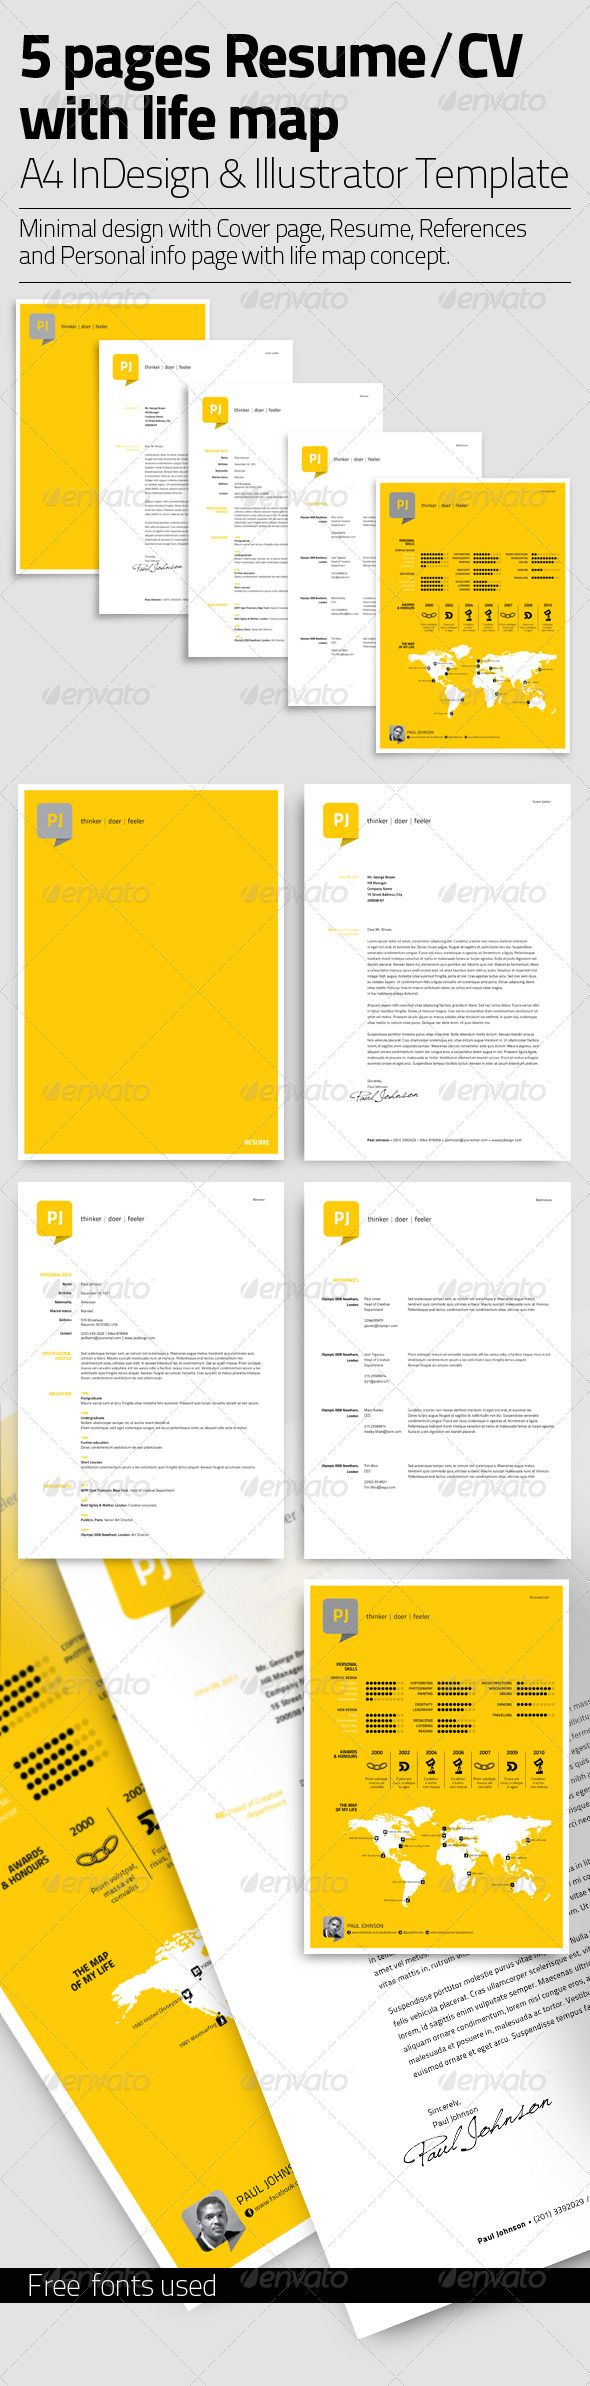 Fine 1 2 3 Nu Kapitel Resume Thick 1 Page Resume Format For Freshers Shaped 1 Year Experience Java Resume Format 10 Envelope Template Indesign Young 13 Birthday Invitation Templates Brown1st Place Certificate Template 111 Best Images About Portfolio On Pinterest | Portfolio Book ..